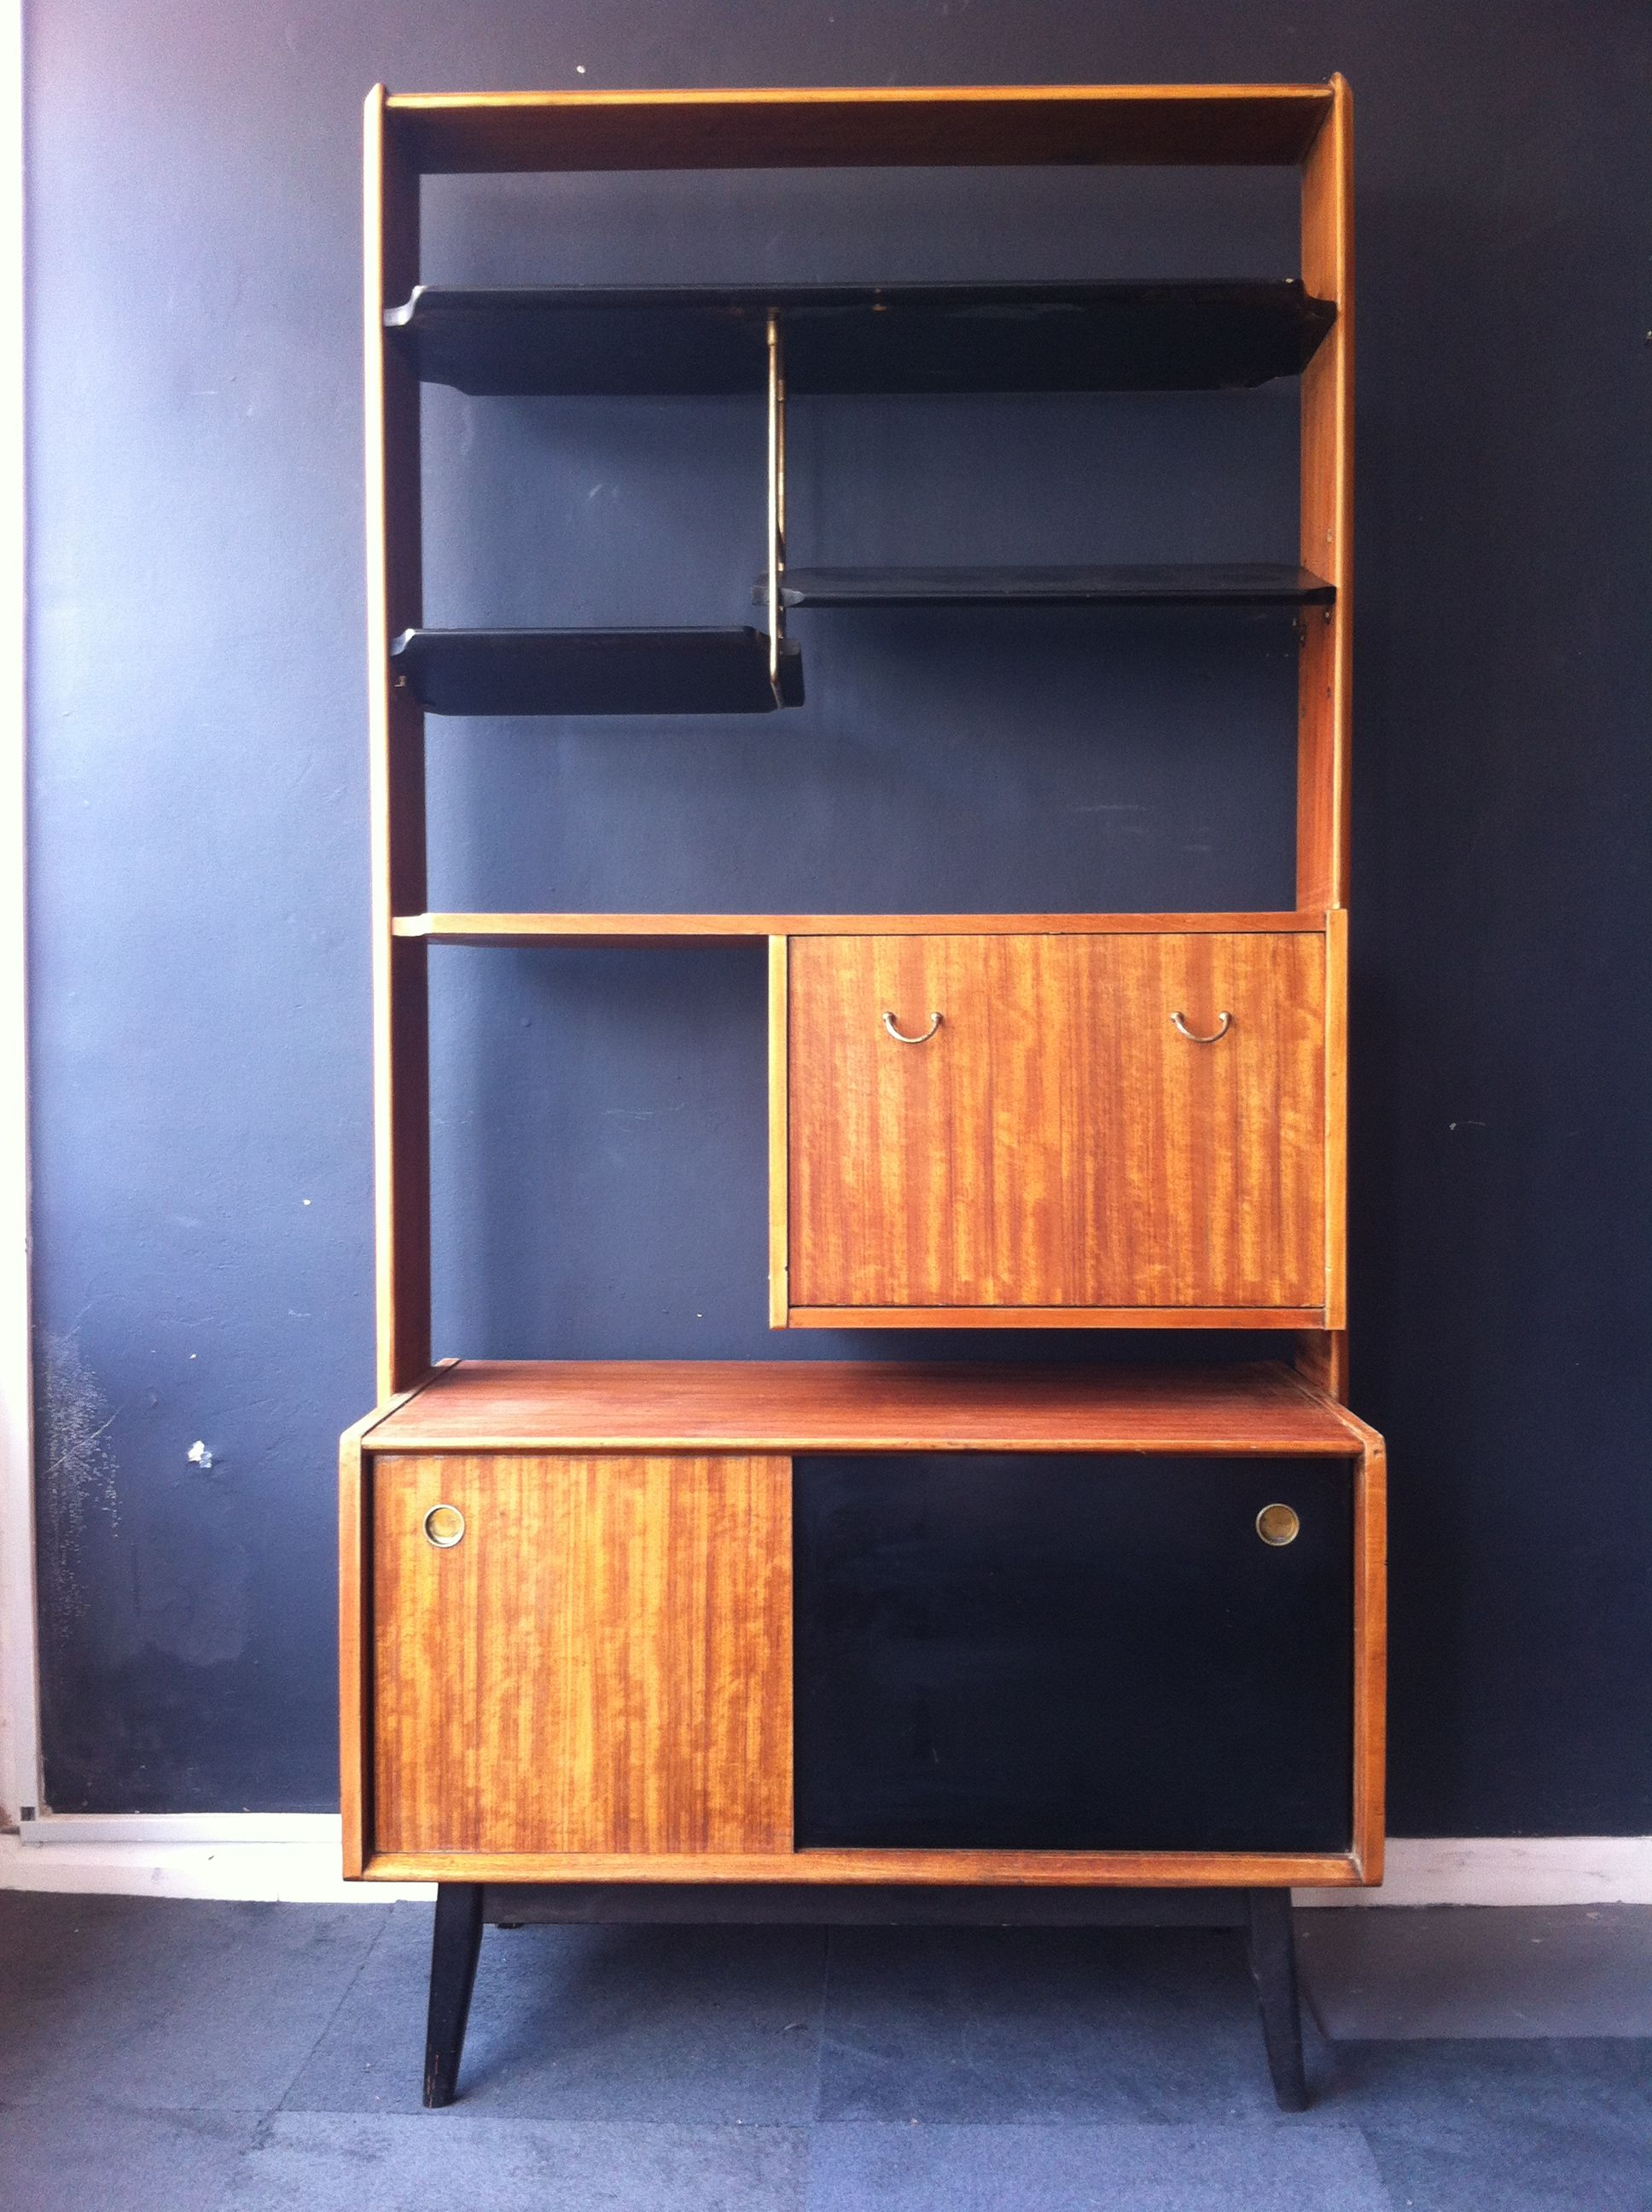 1950s G Plan Librenza room divider wall unit available at www